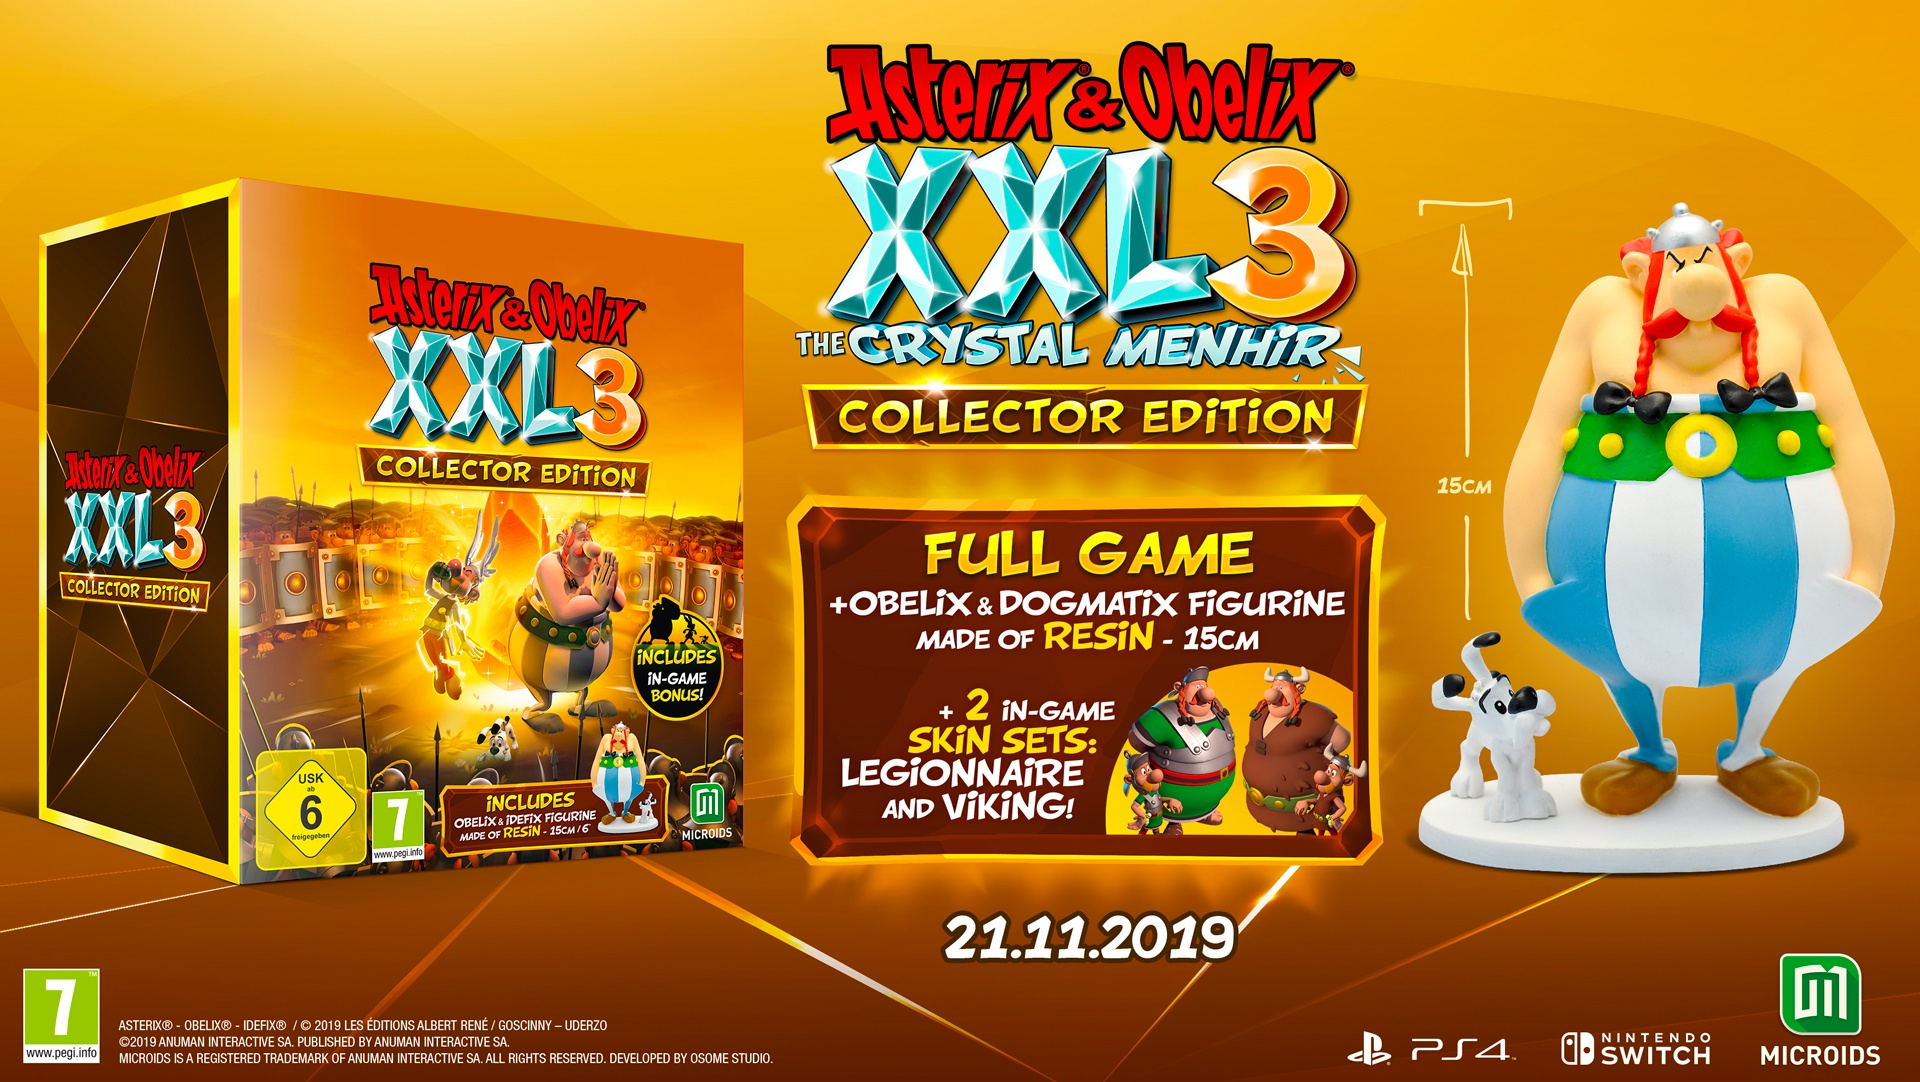 Asterix & Obelix XXL3 - Check out some new screenshots | Microids